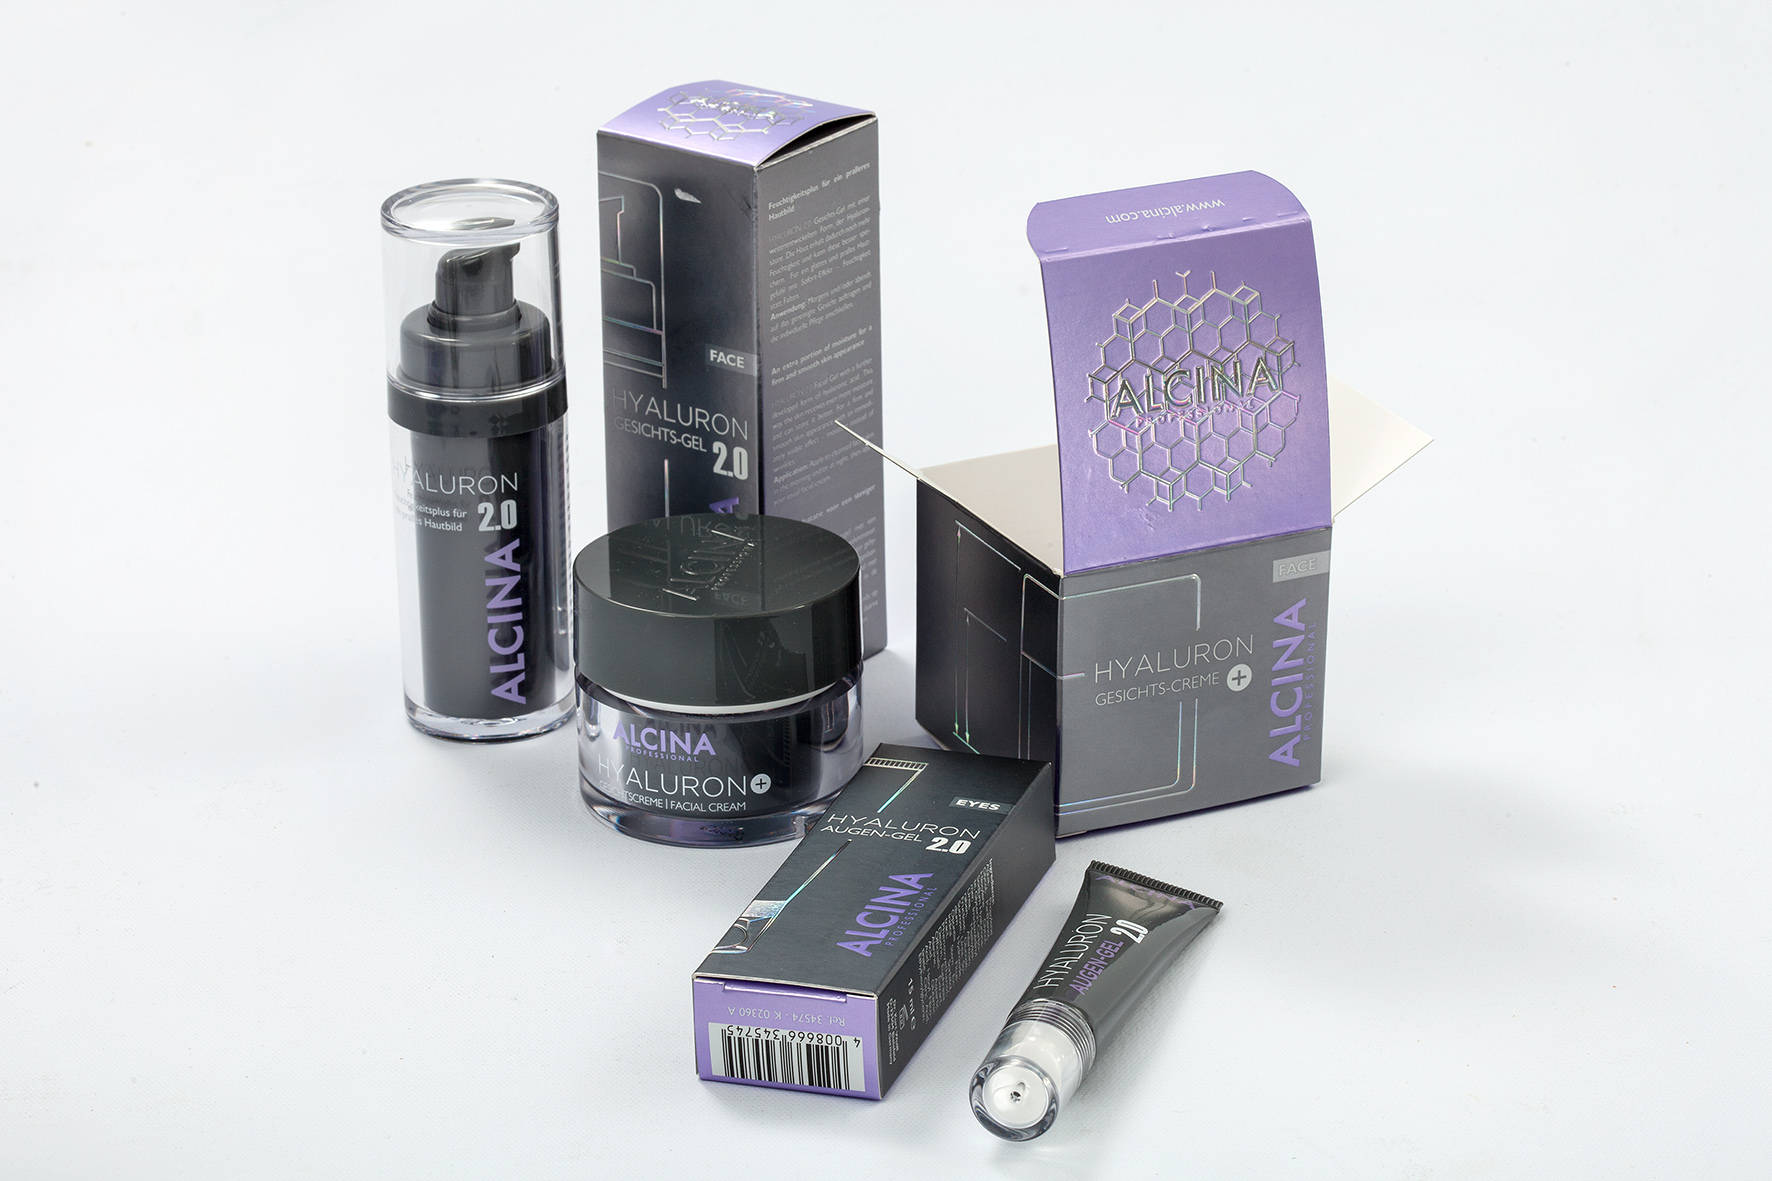 HYALURON cosmetic series